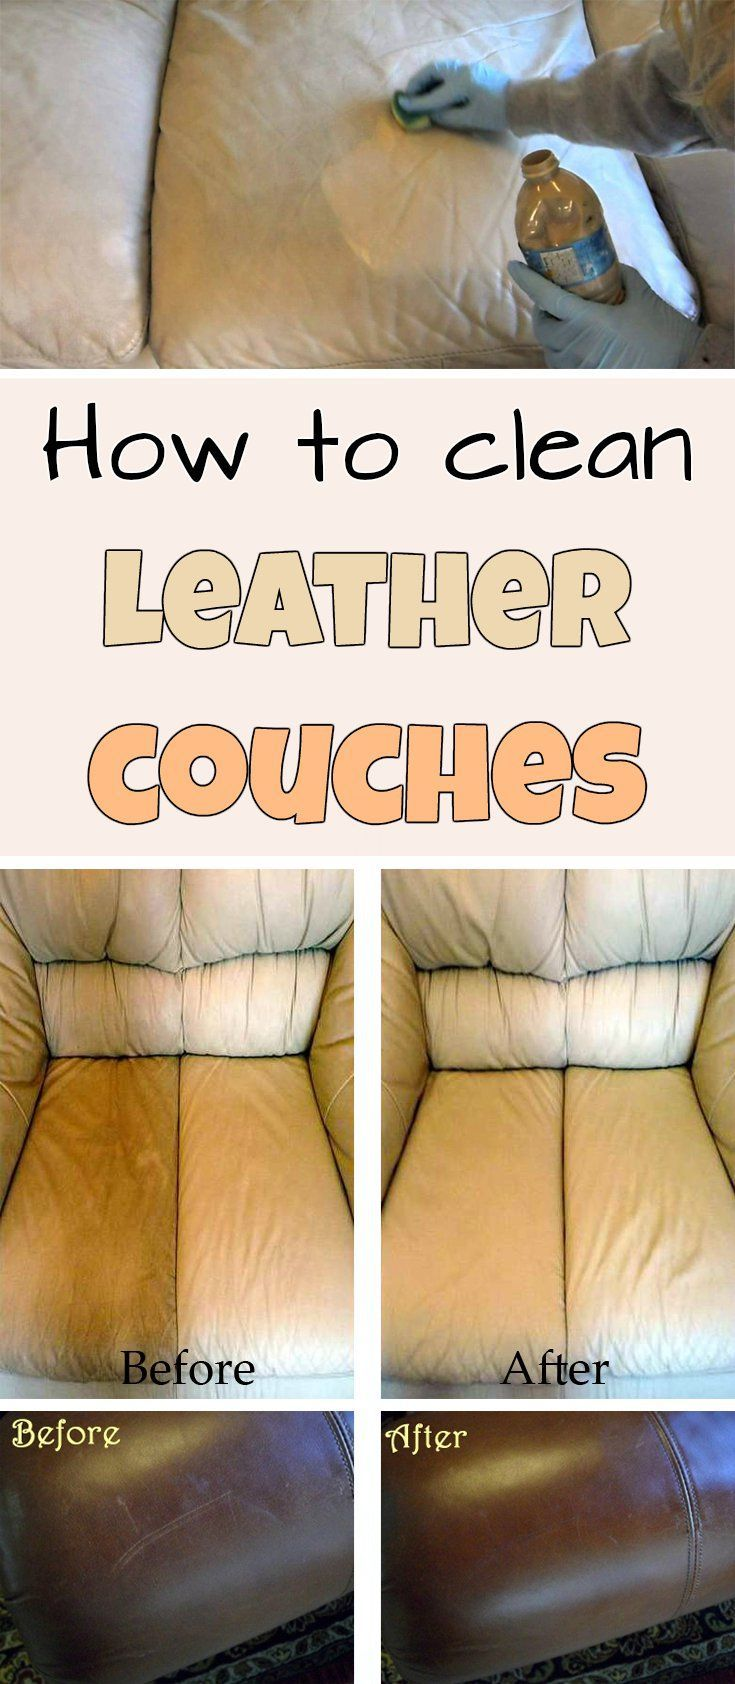 How To Clean Leather Couches Mycleaningsolutions Com